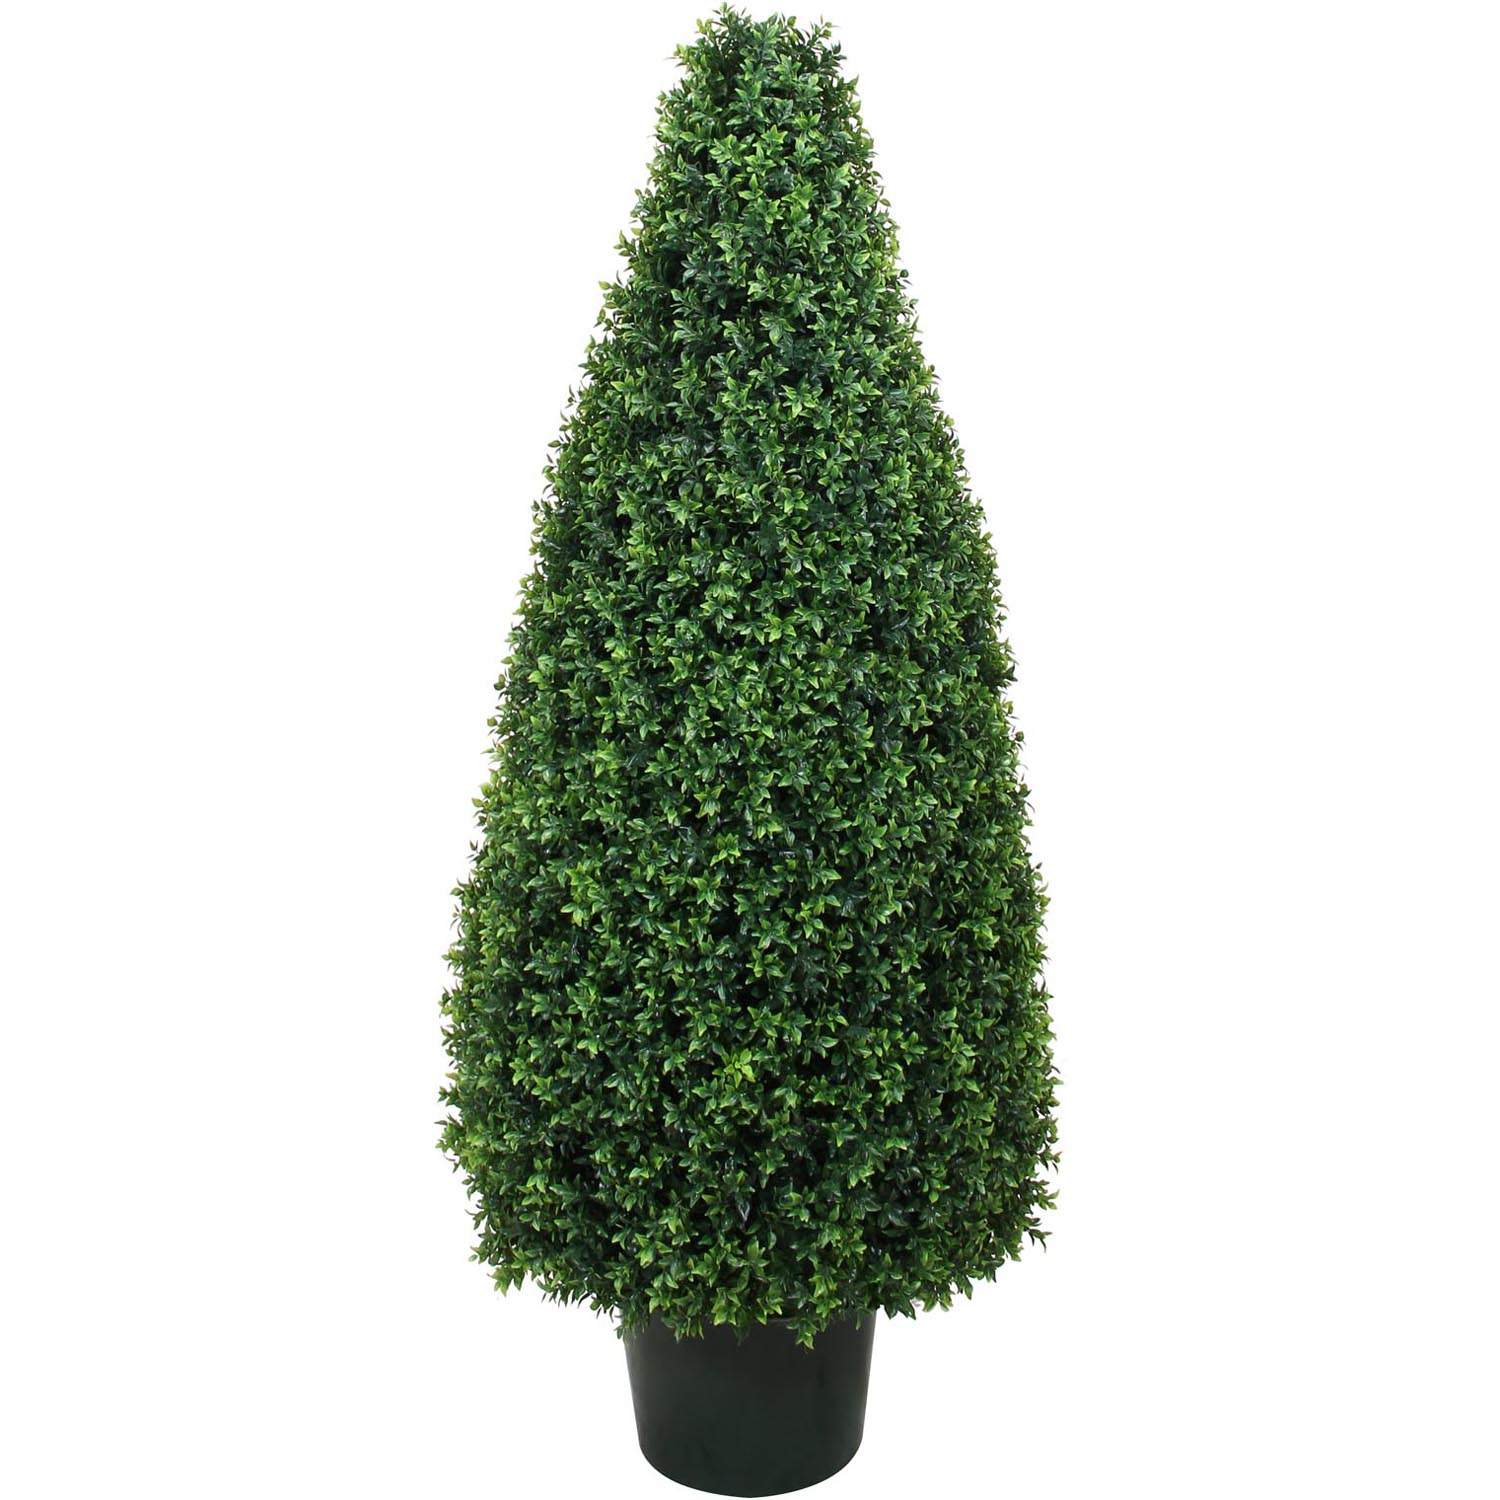 30 Inch Uv Protected Basil Cone Topiary: Potted